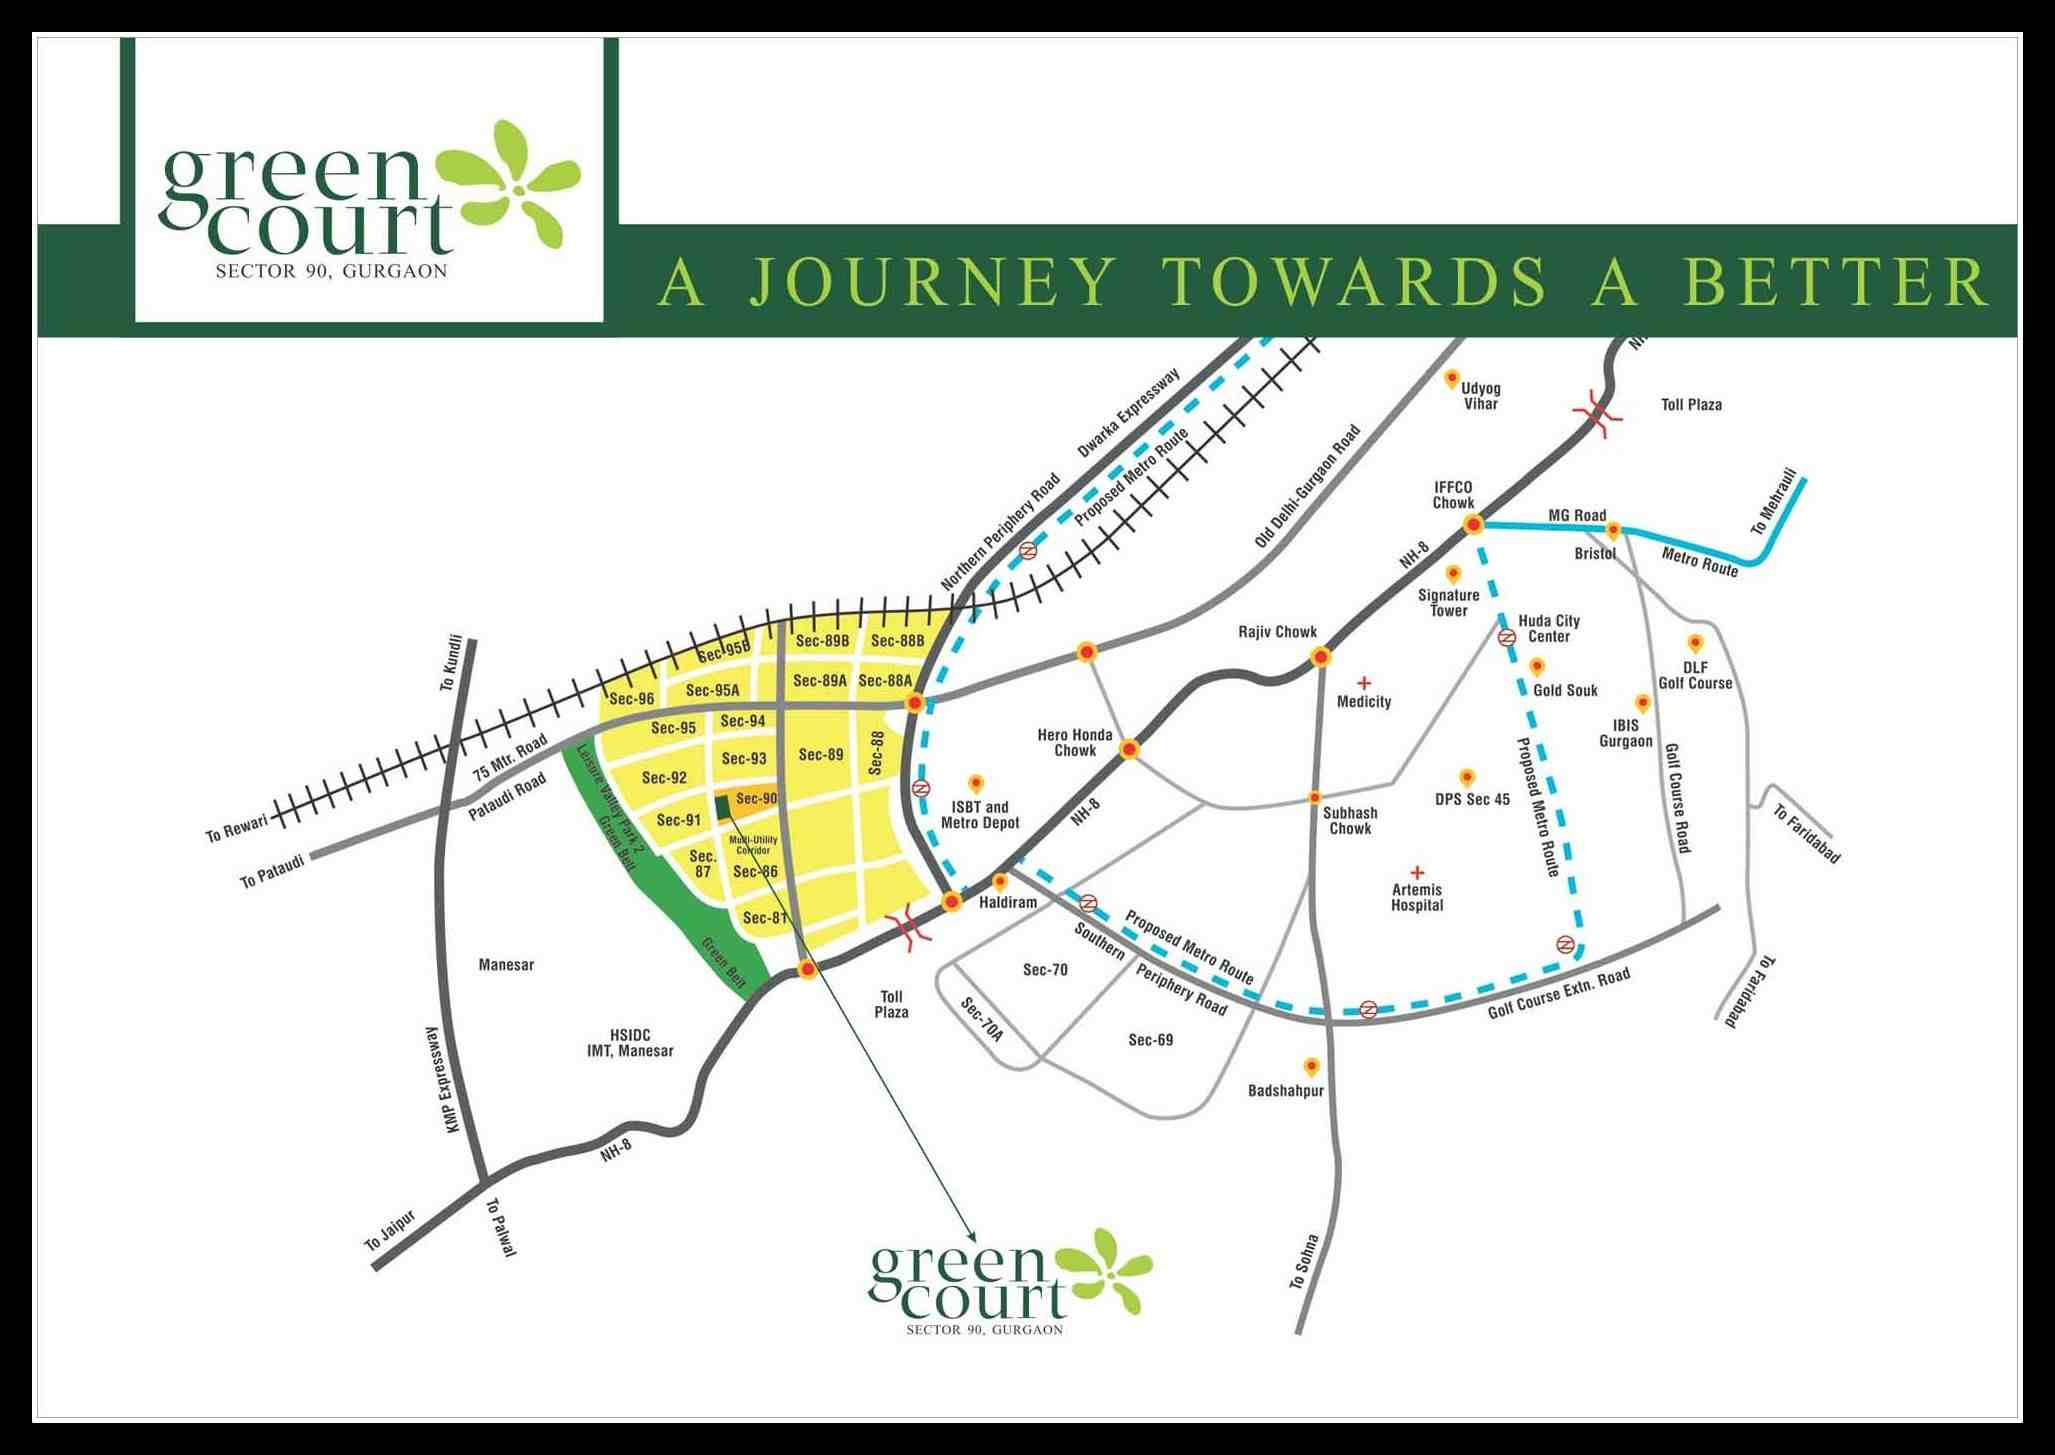 affordable housing project in sector 90 gurgaon location map